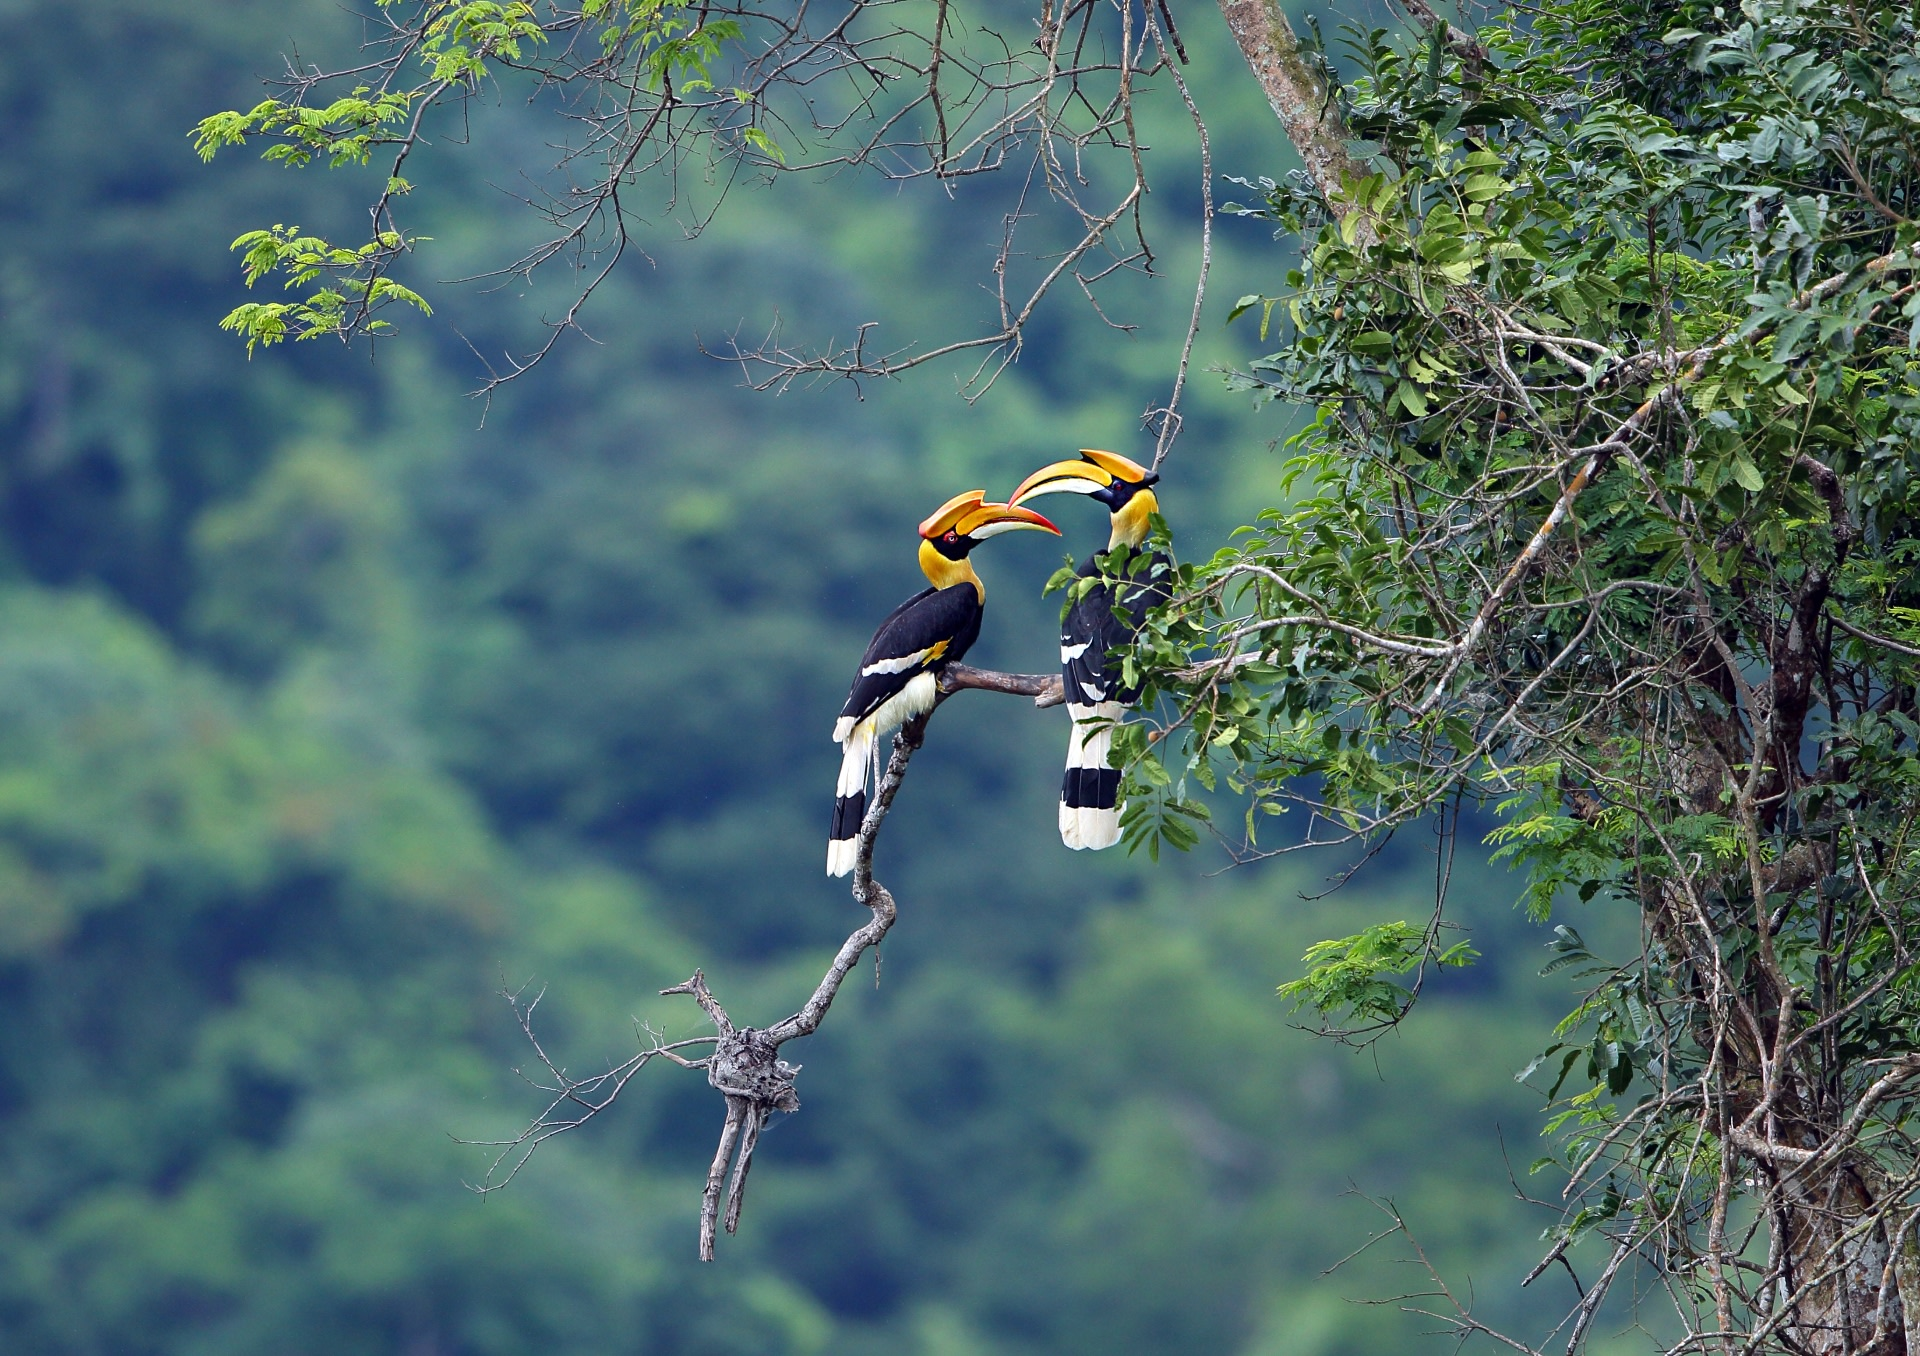 (Right) Great hornbills are territorial birds and live in the same region all their lives. They also form monogamous pairs, and mate for life. Photo: teekayu/ Shutterstock